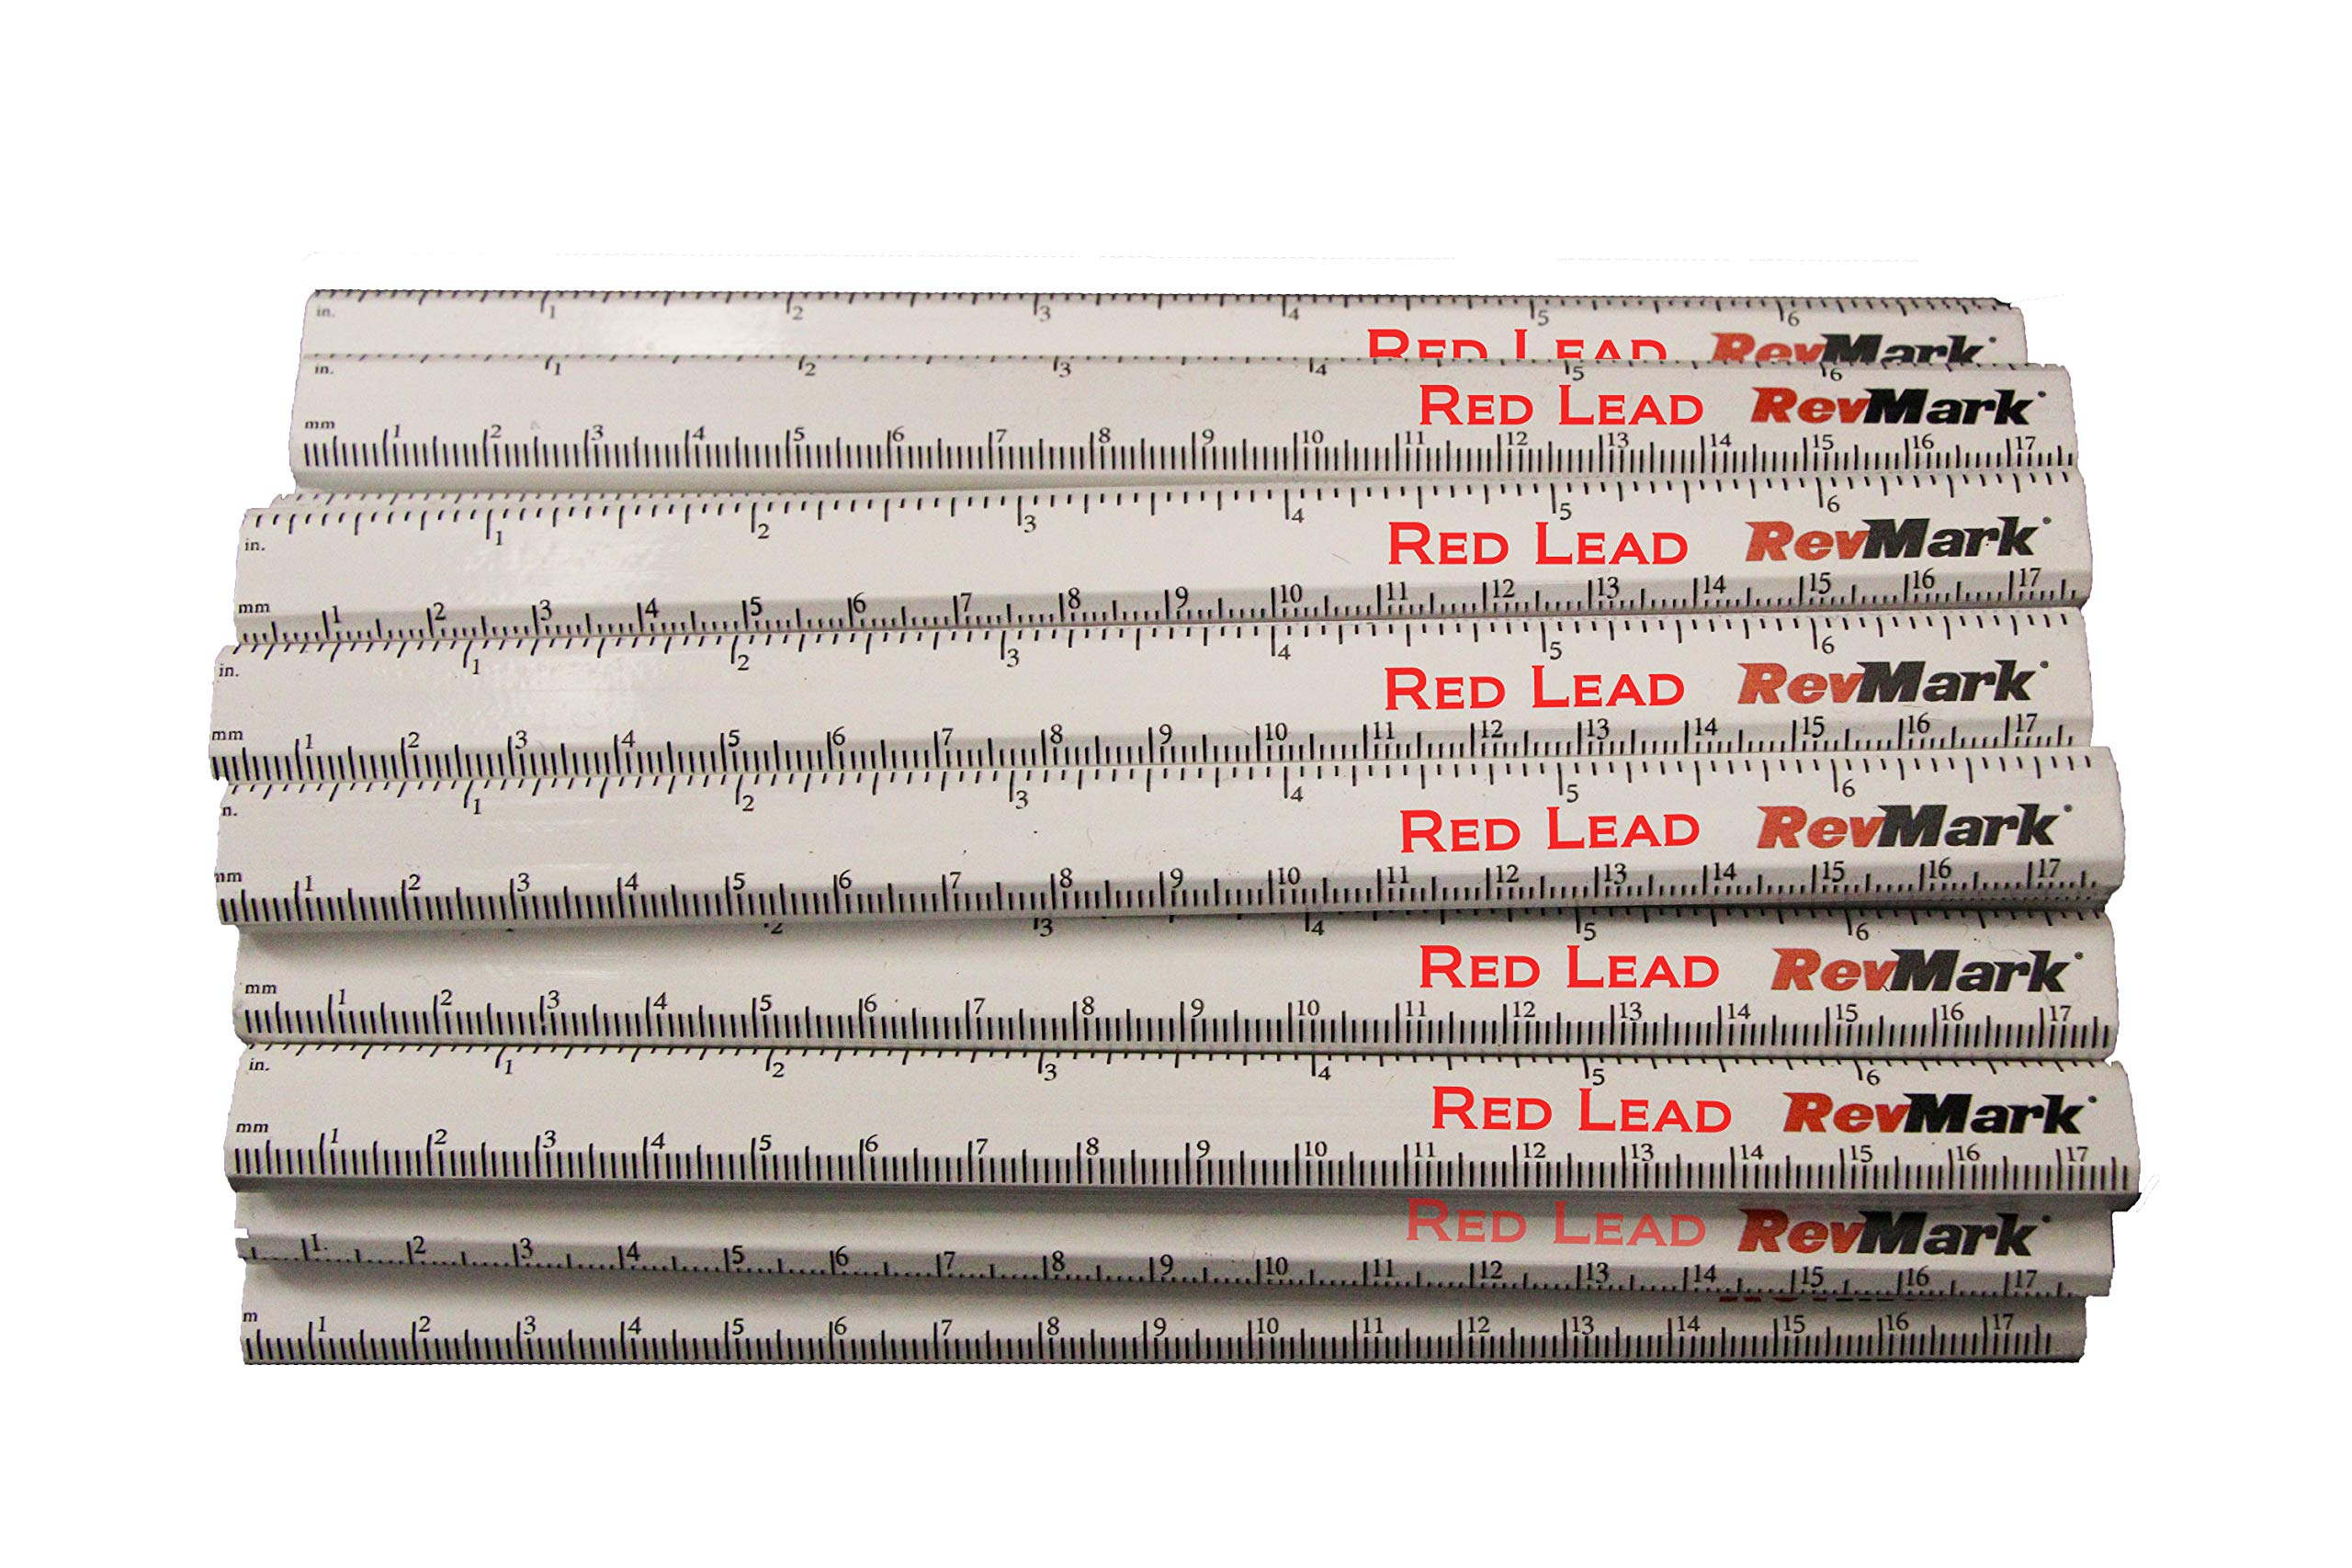 RevMark Carpenter Pencil 24 Pack White with Red Lead and Printed Ruler, Made in The USA. Quality Cedar Wood for Carpenters, Construction Workers, Woodworkers, Framers. Medium Lead Bulk Lumber Pencils by RevMark